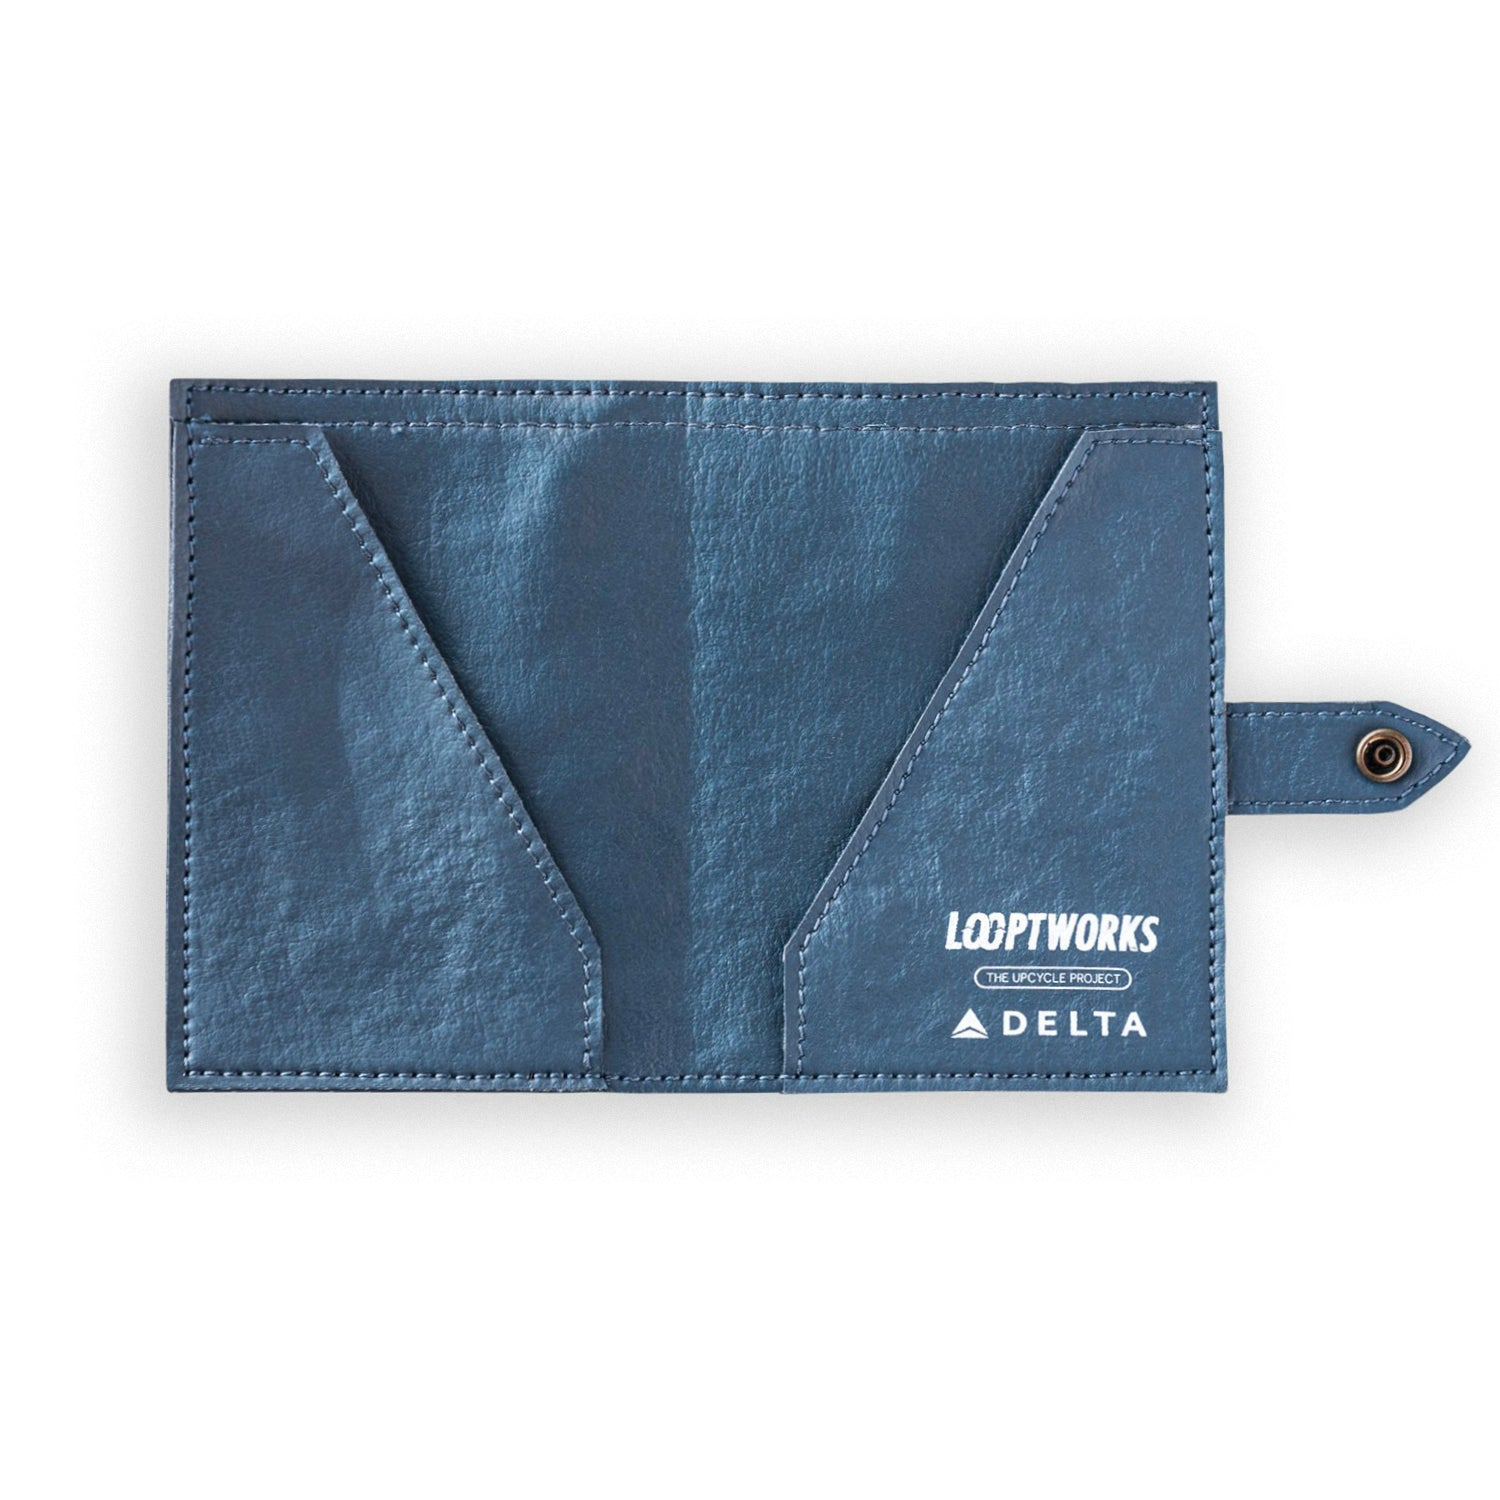 Delta Family Passport Wallet Accessories - Looptworks